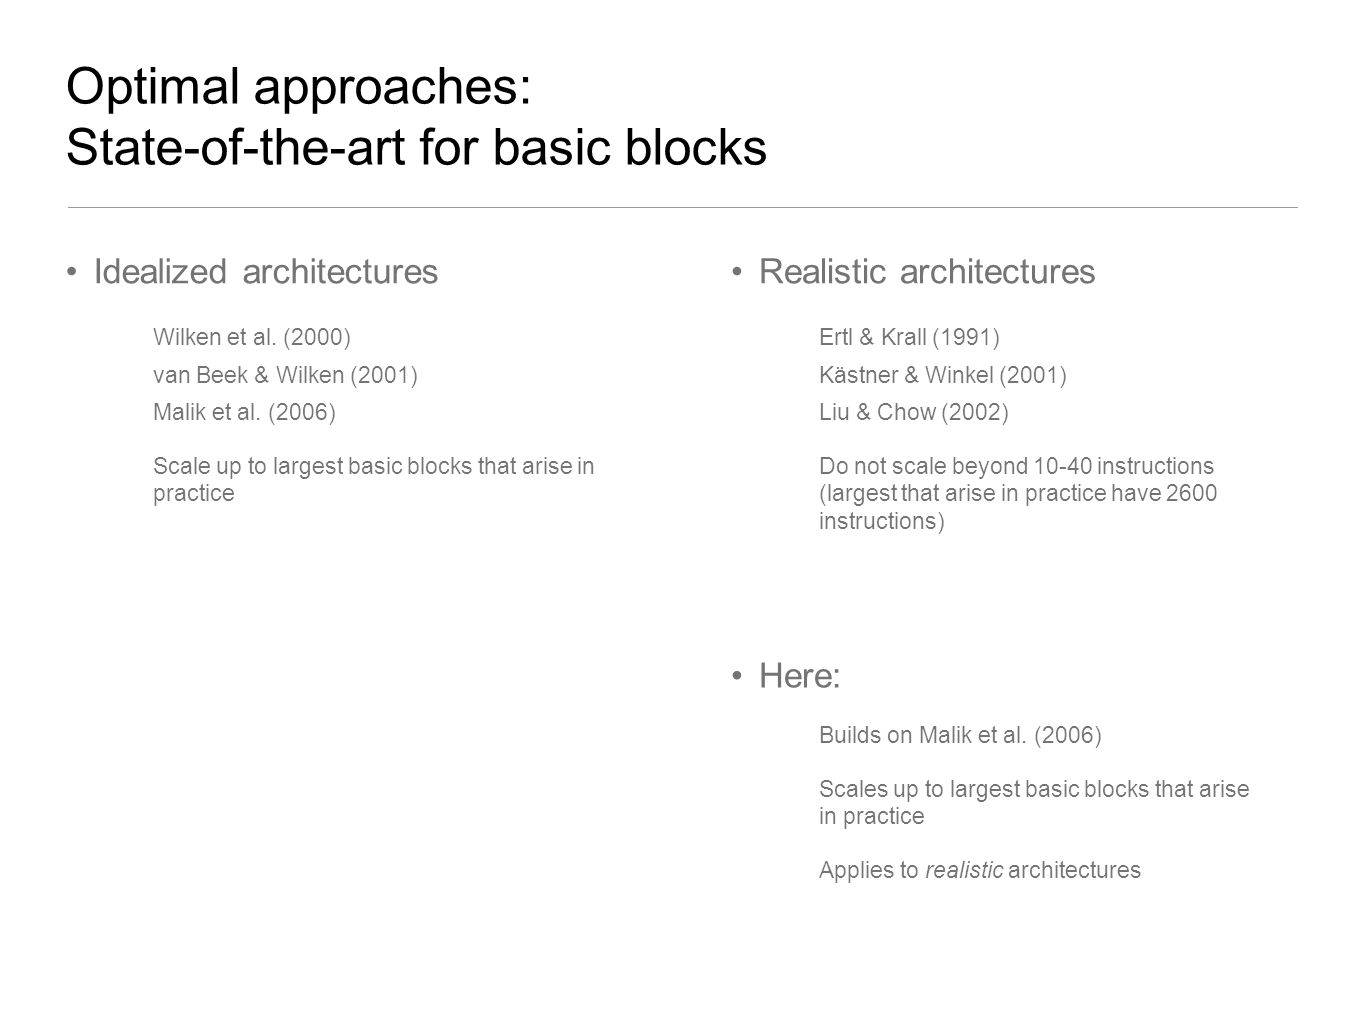 Optimal approaches: State-of-the-art for basic blocks